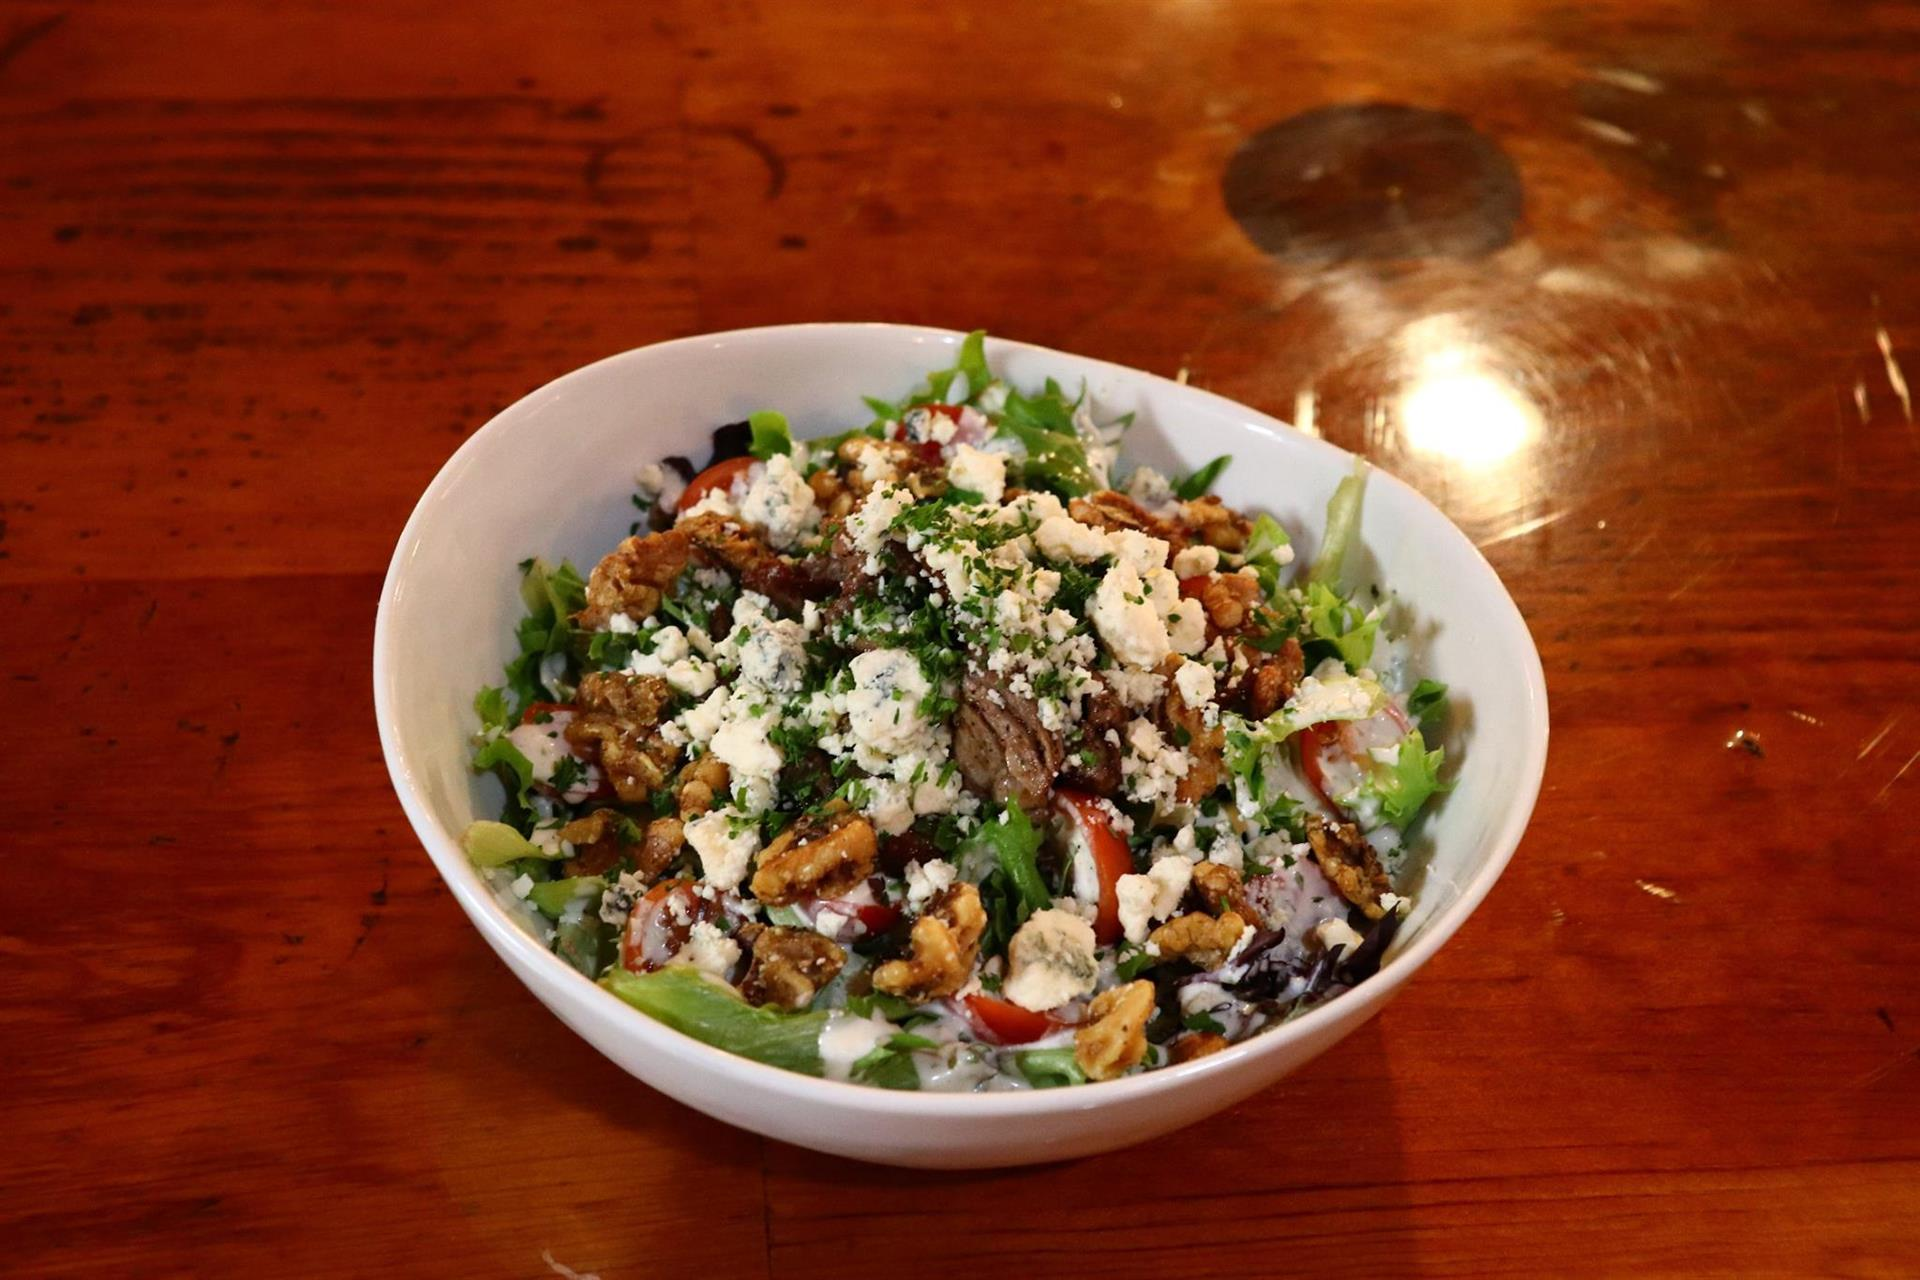 Steak and Blue Cheese Salad: mixed greens, candied wallnut with blue cheese crumble and blue cheese dressing